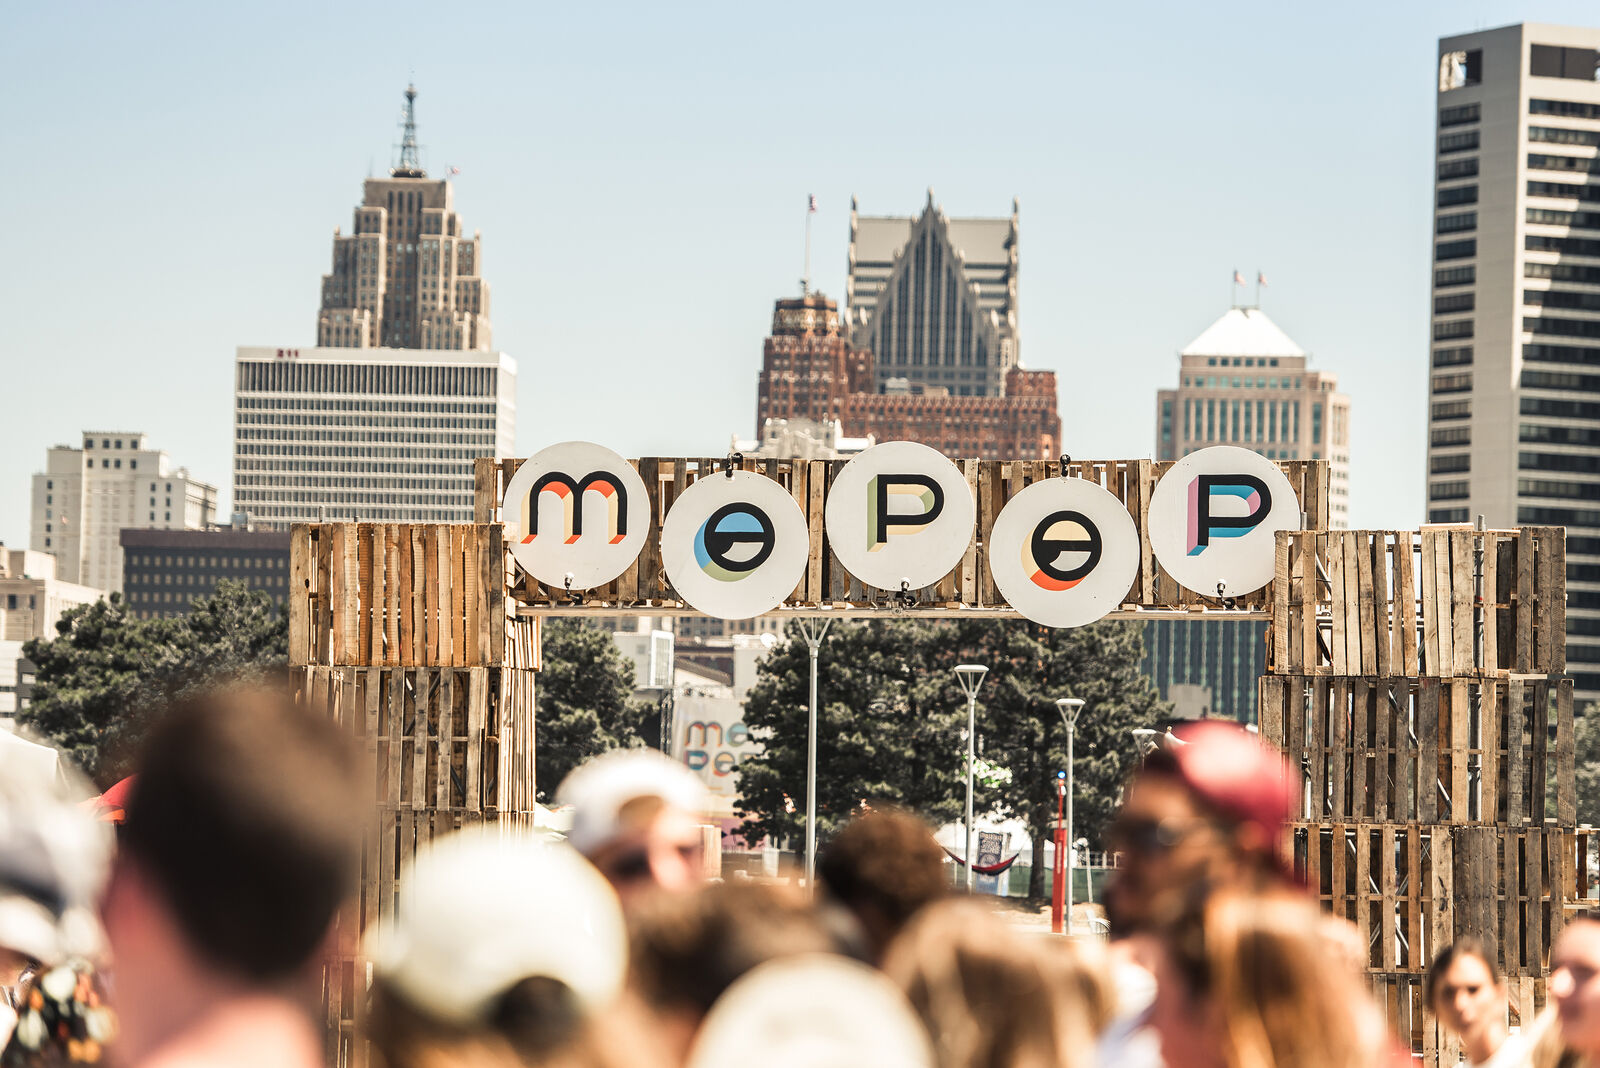 Mo Pop Festival Sunday Only featuring The National, Portugal. The Man, St Vincent and more Tickets (Jul 29)